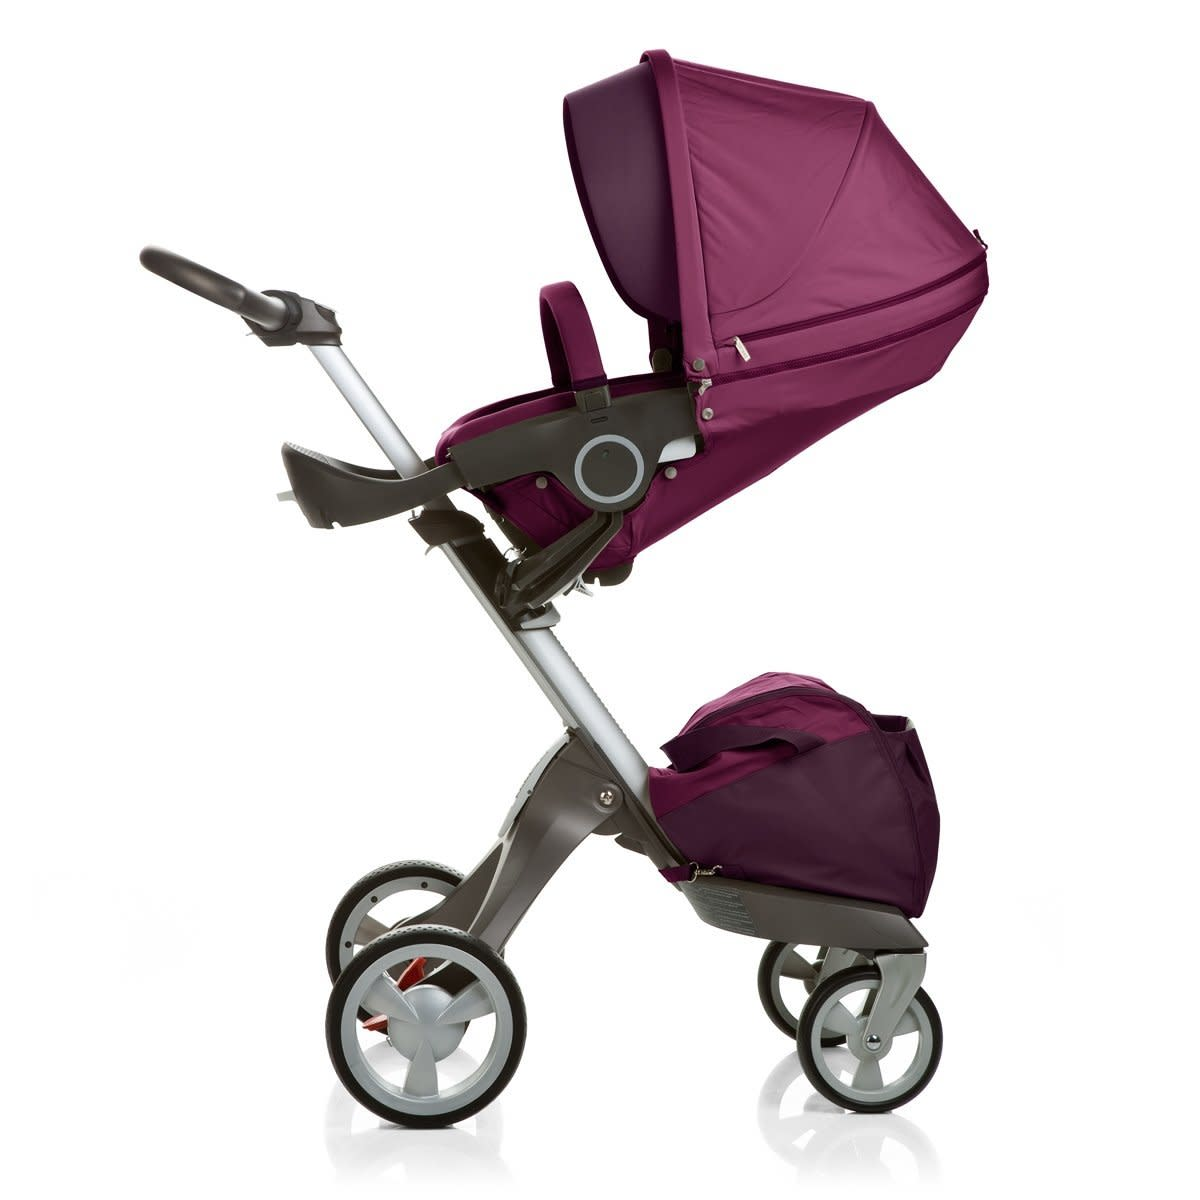 The Fashionable Babies Ultimate Stroller